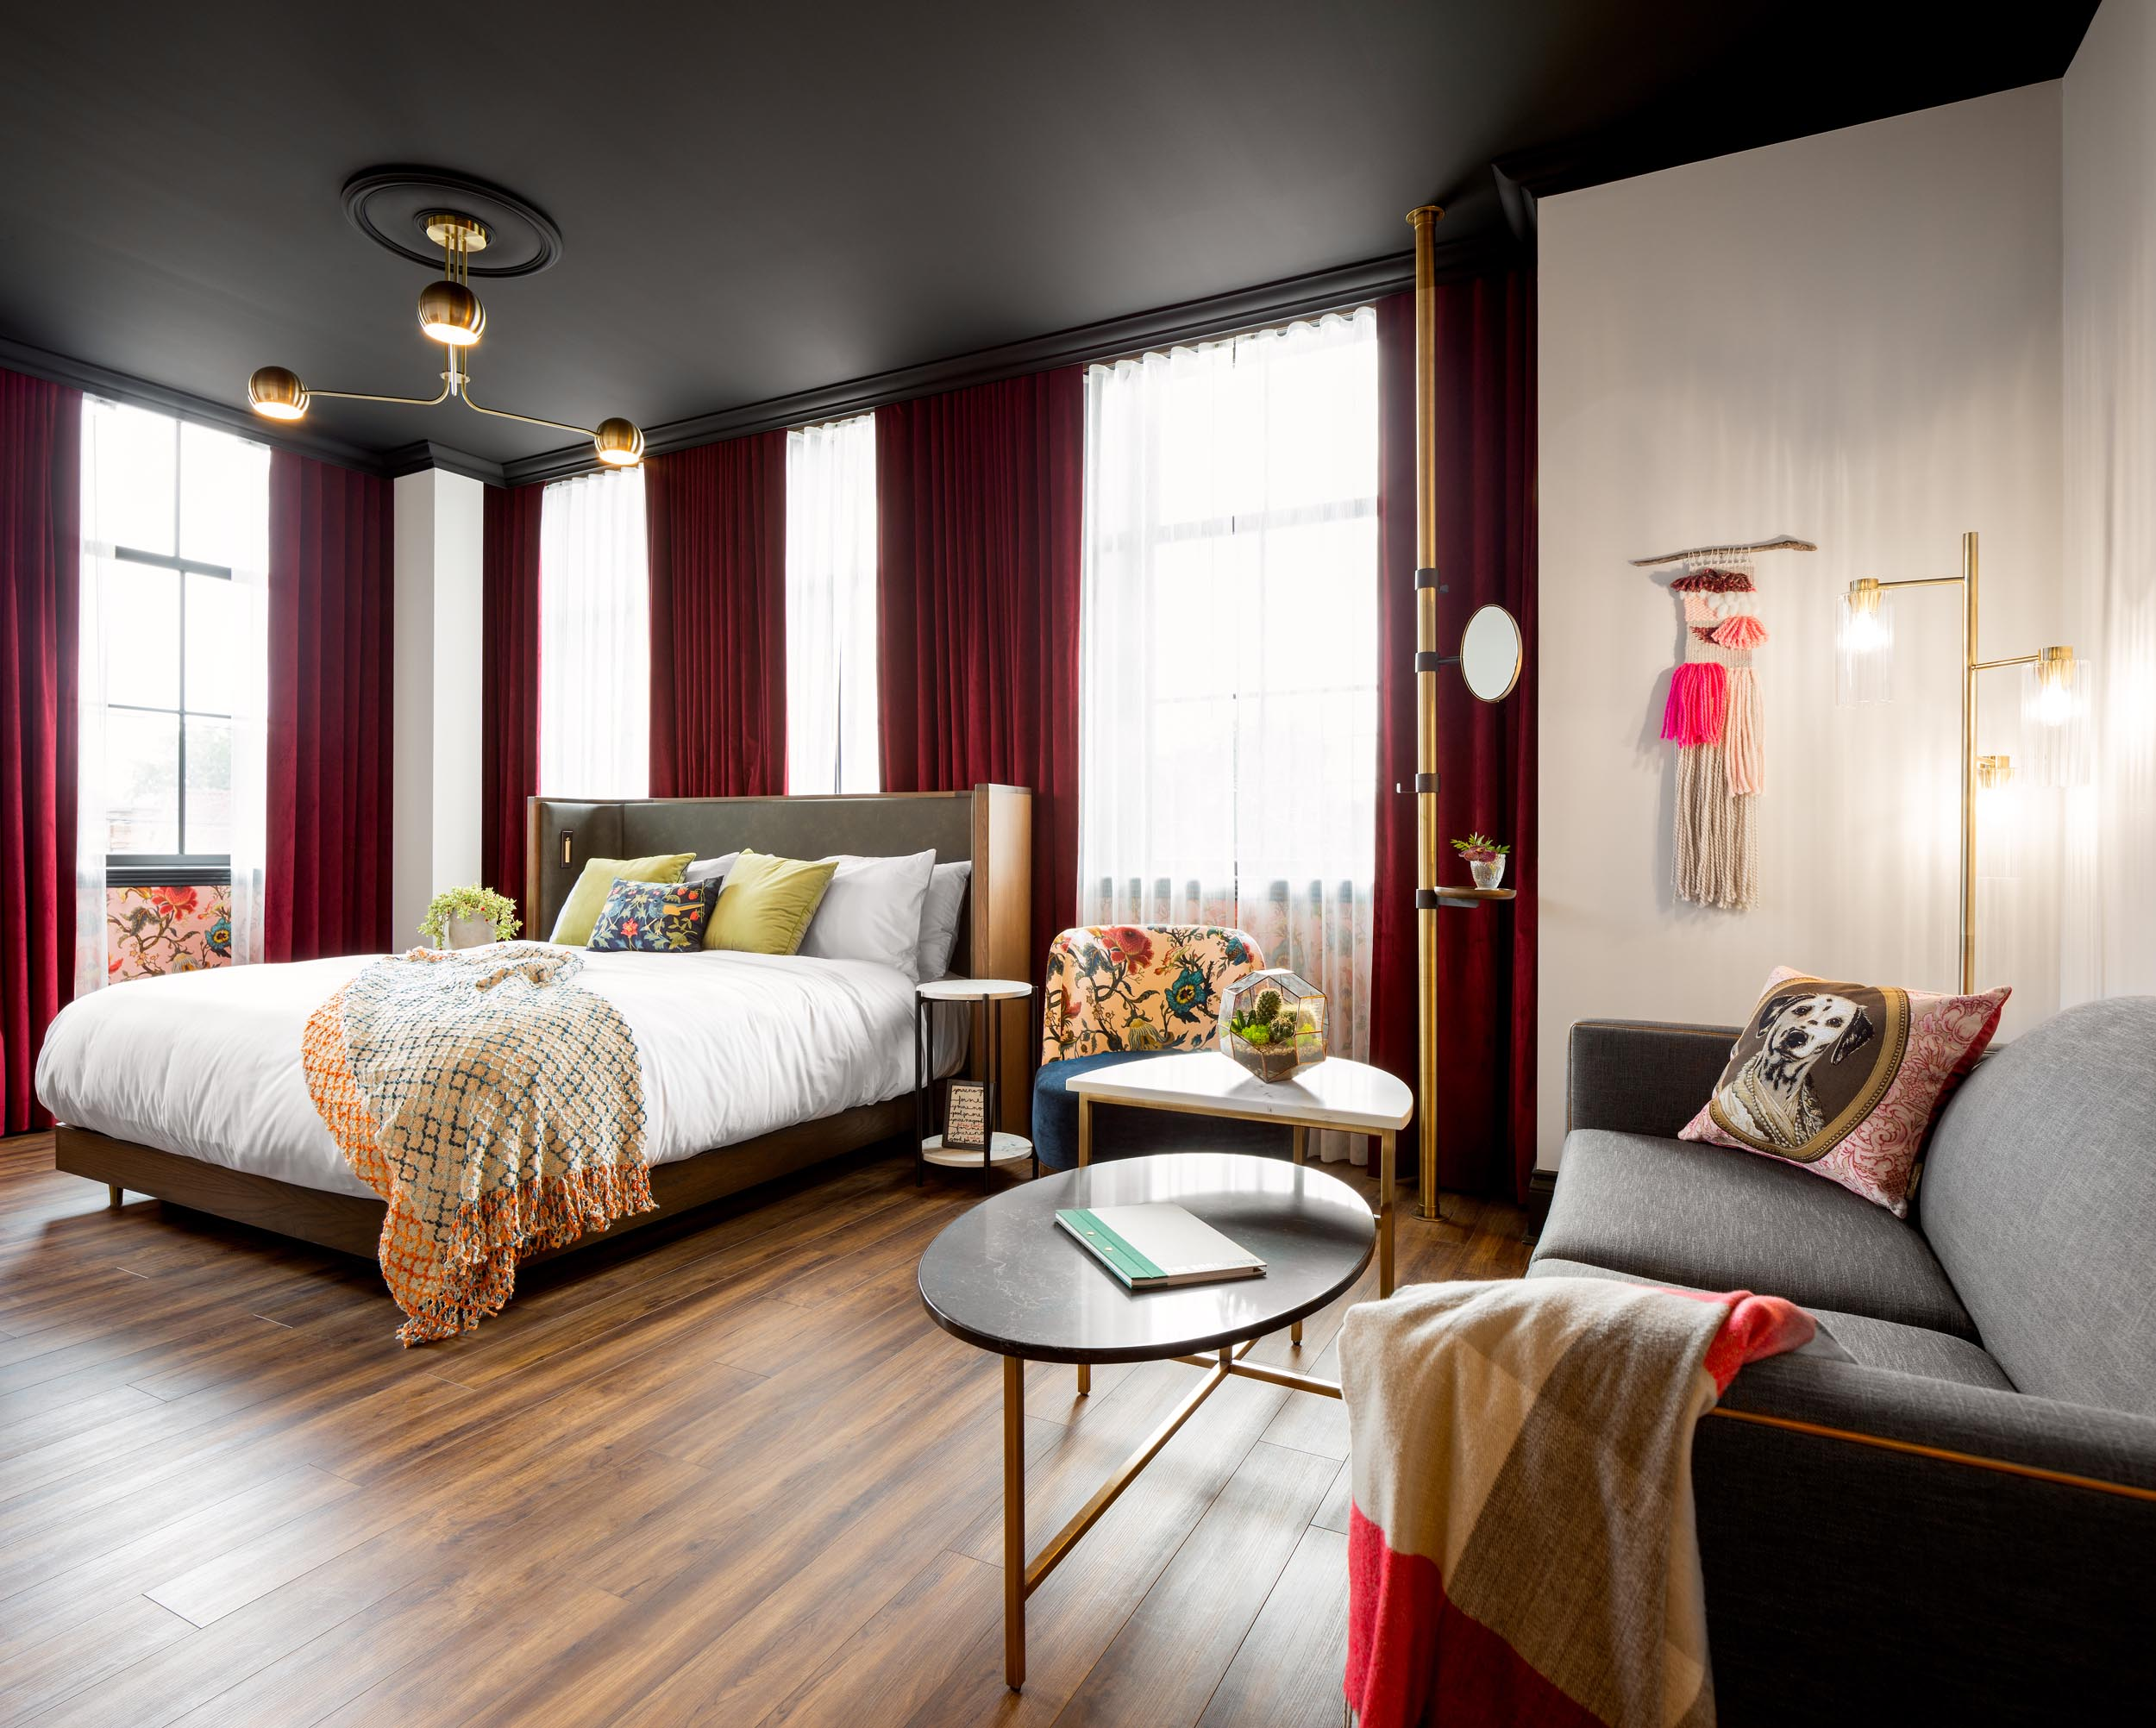 Broadview Hotel Toronto Modern Bedroom Interior Design Photography by Worker Bee Supply